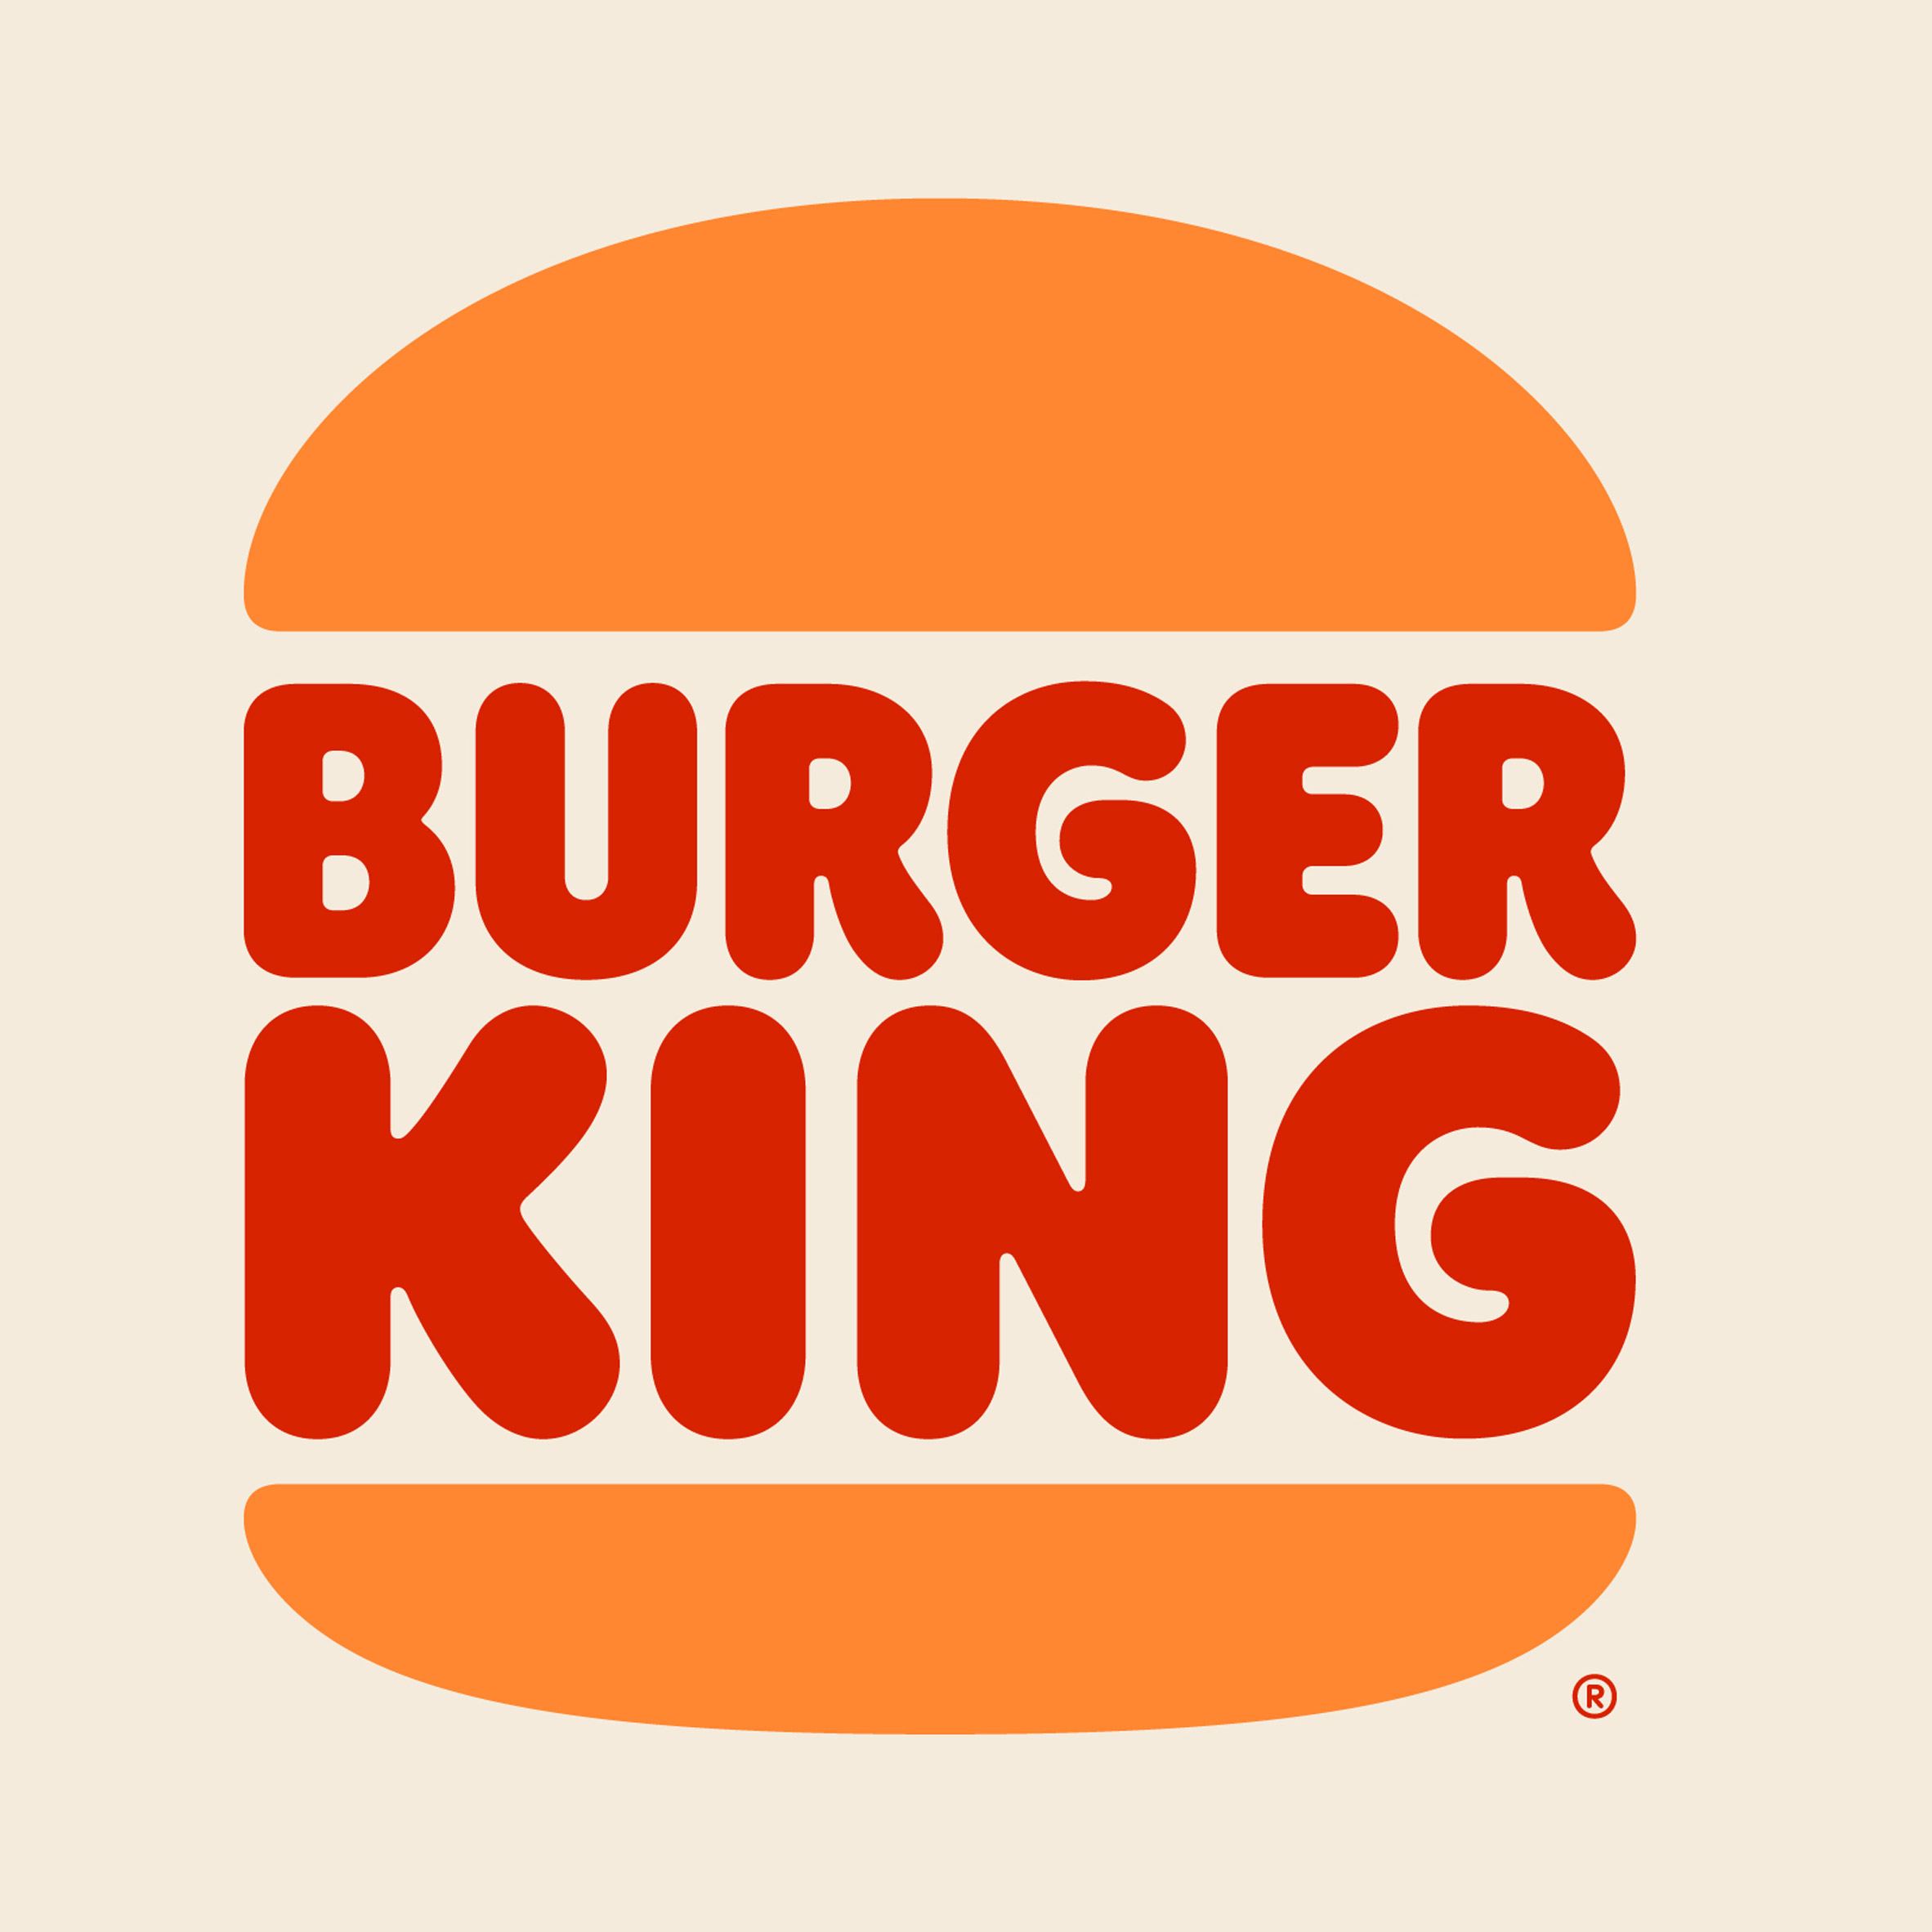 Burger King reveals simplified logo as part of first rebrand in 20 years